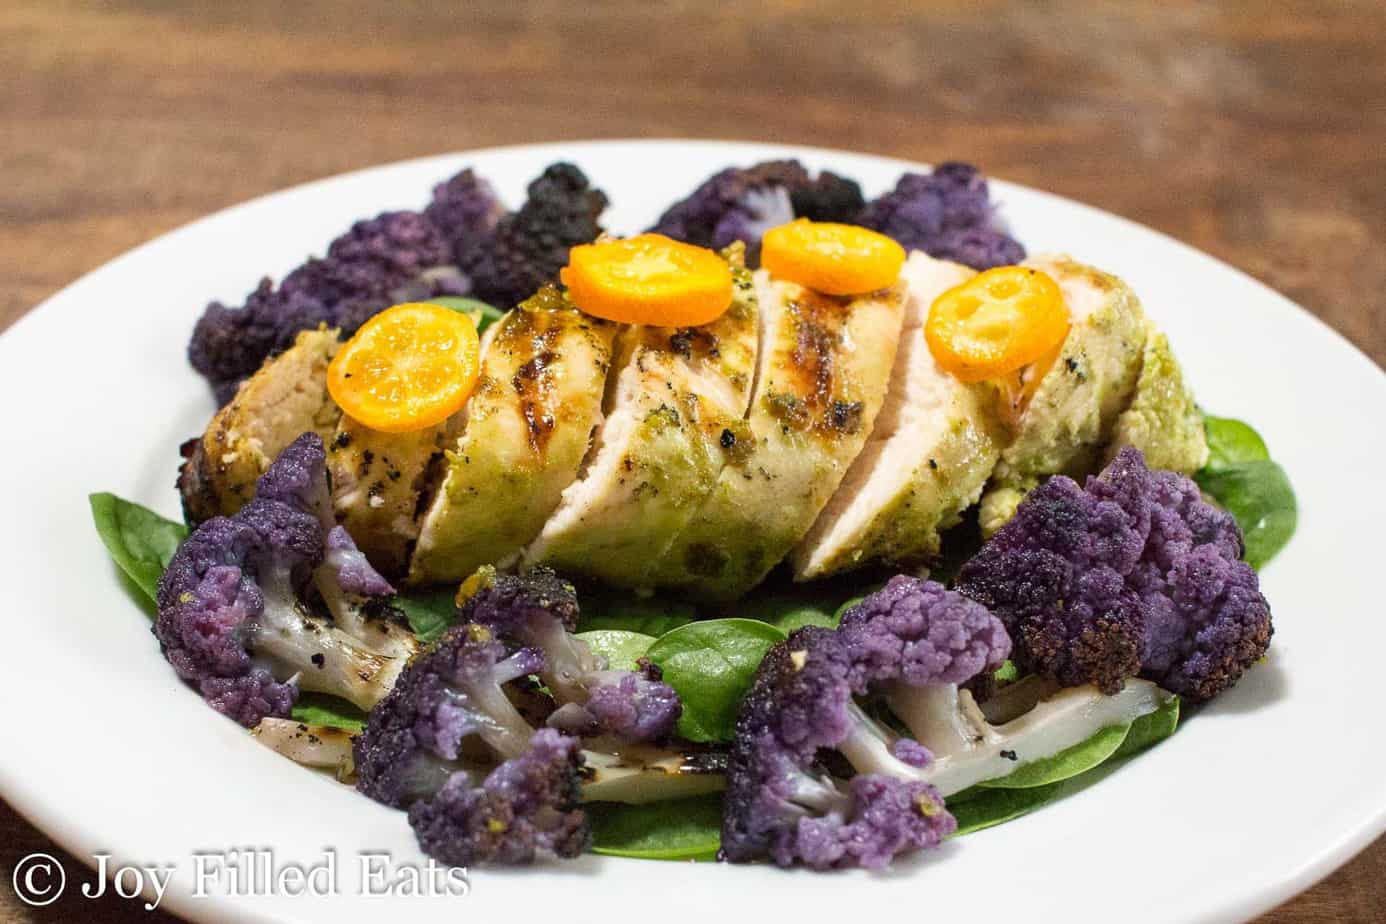 citrus basil grilled chicken topped with halved yellow cherry tomatoes onto a bed of spinach surrounded by purple cauliflower